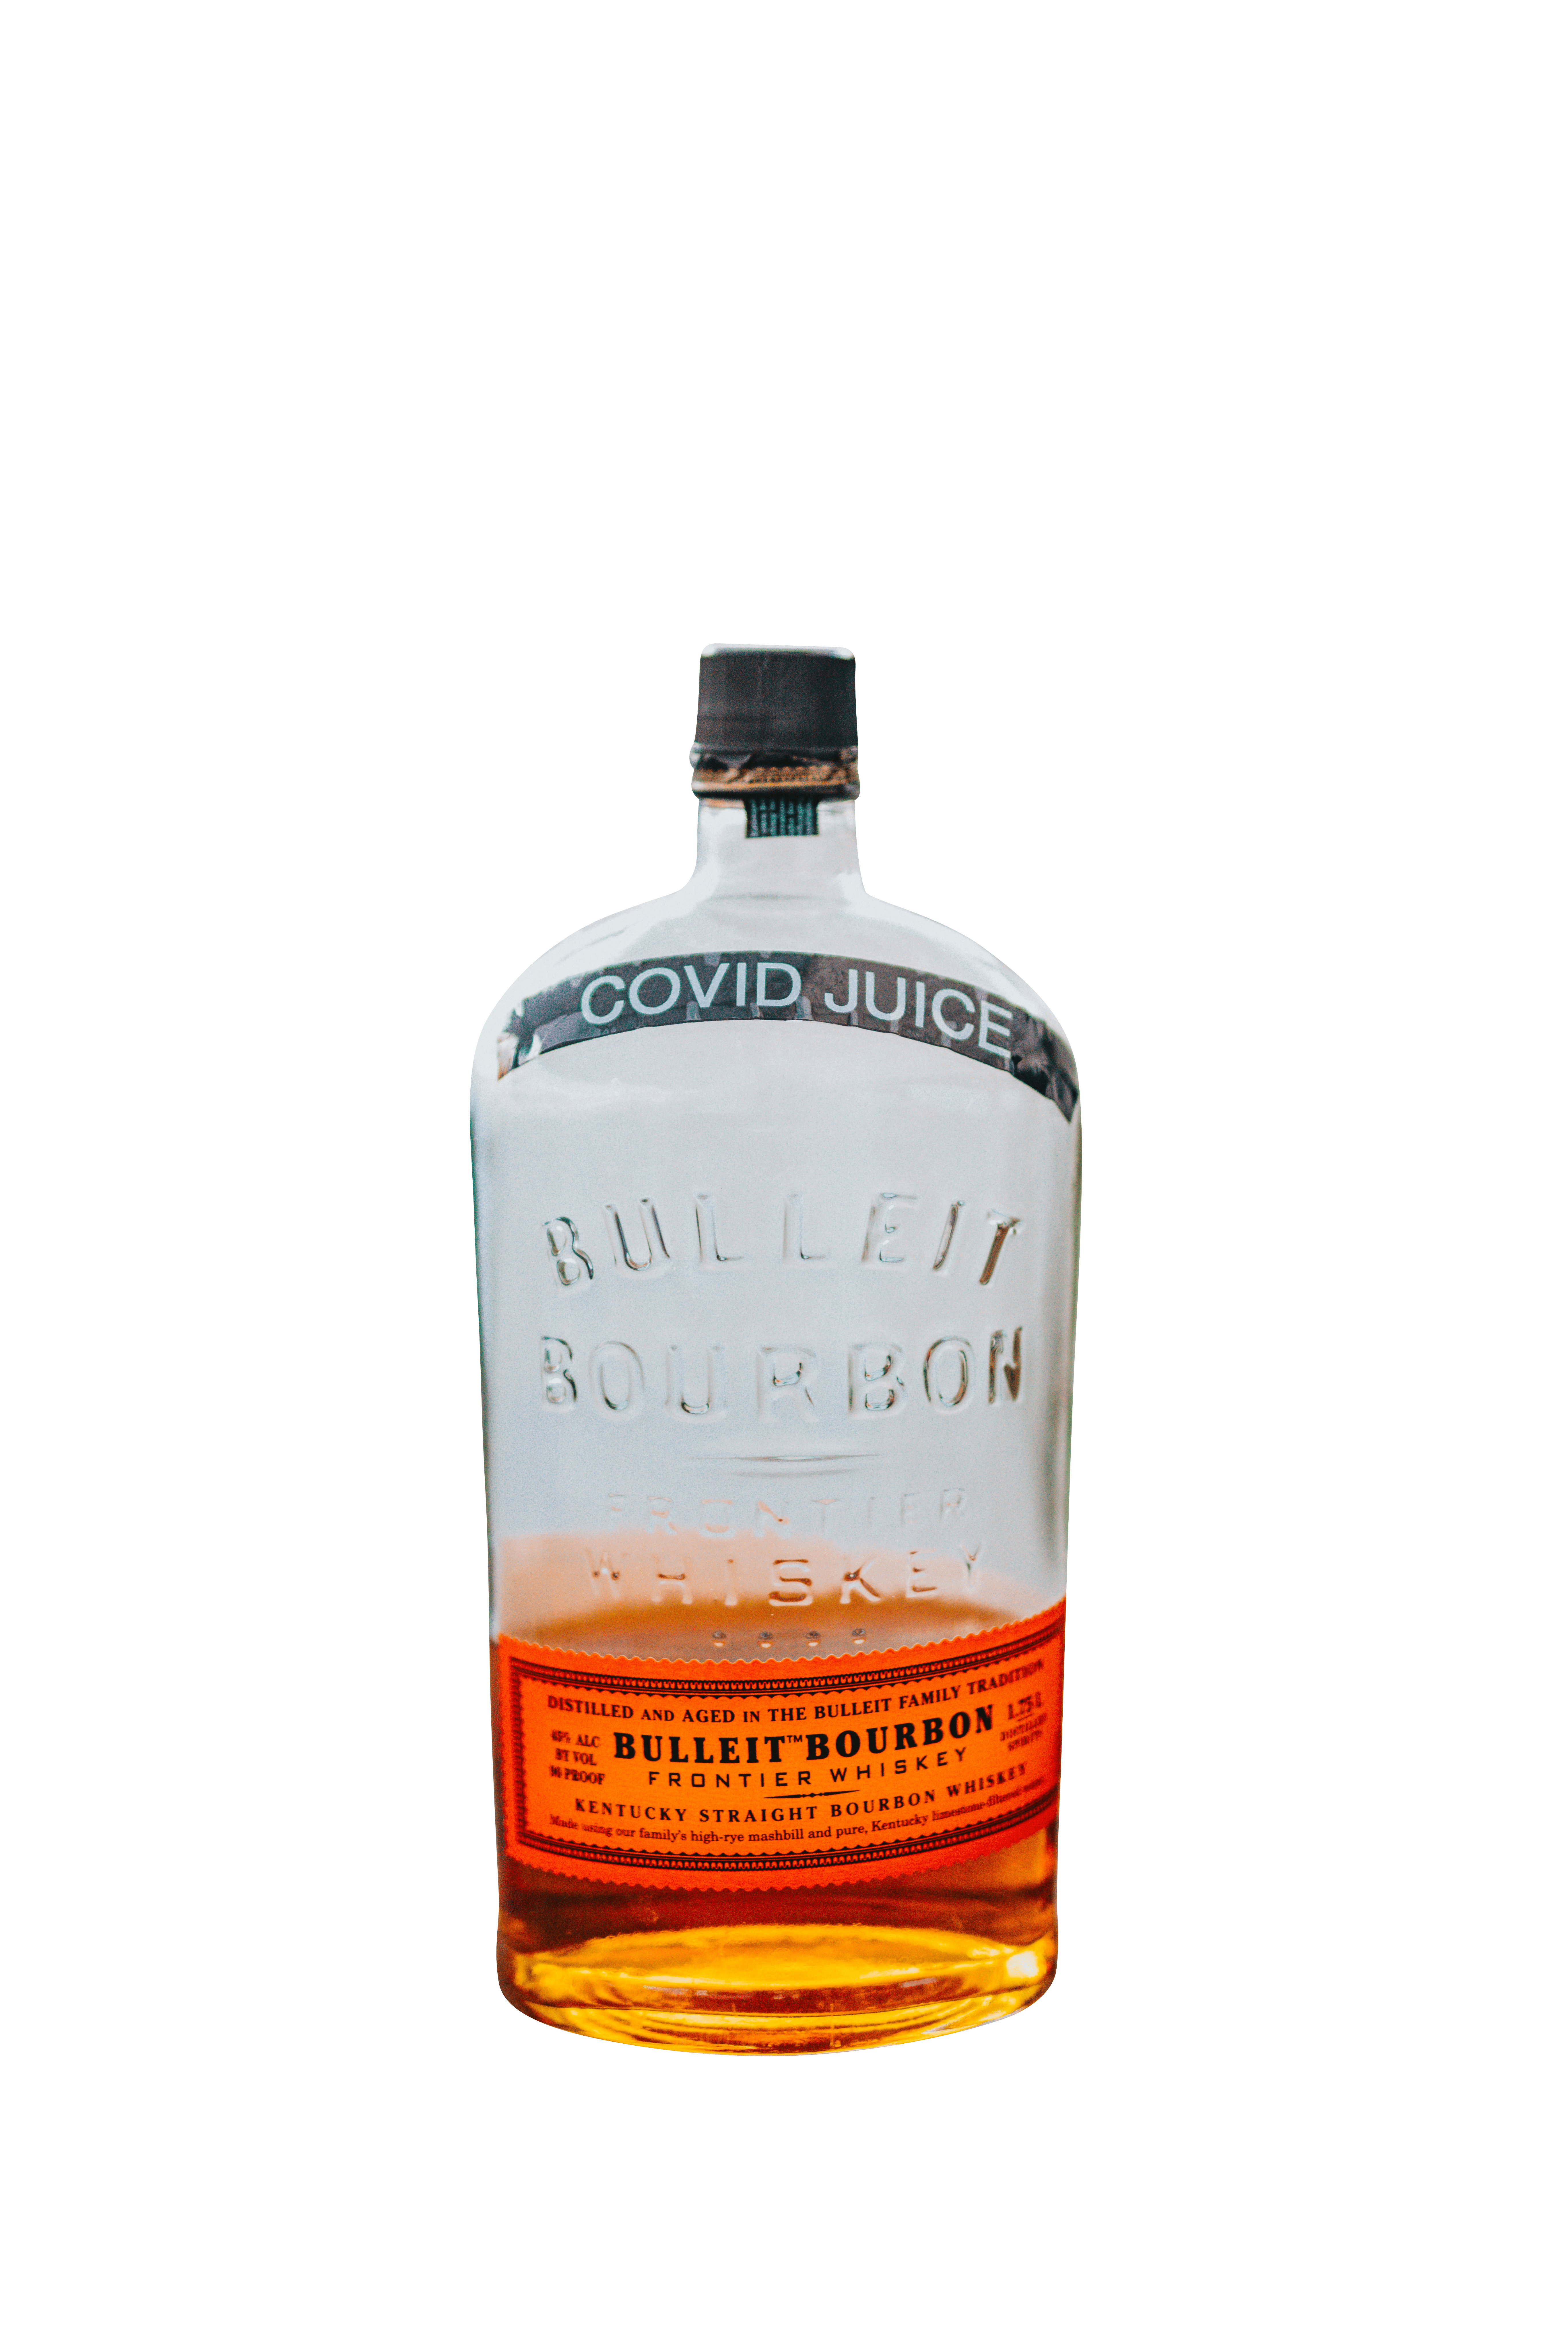 Bulleit bourbon 10 years old whiskey transparent background.png